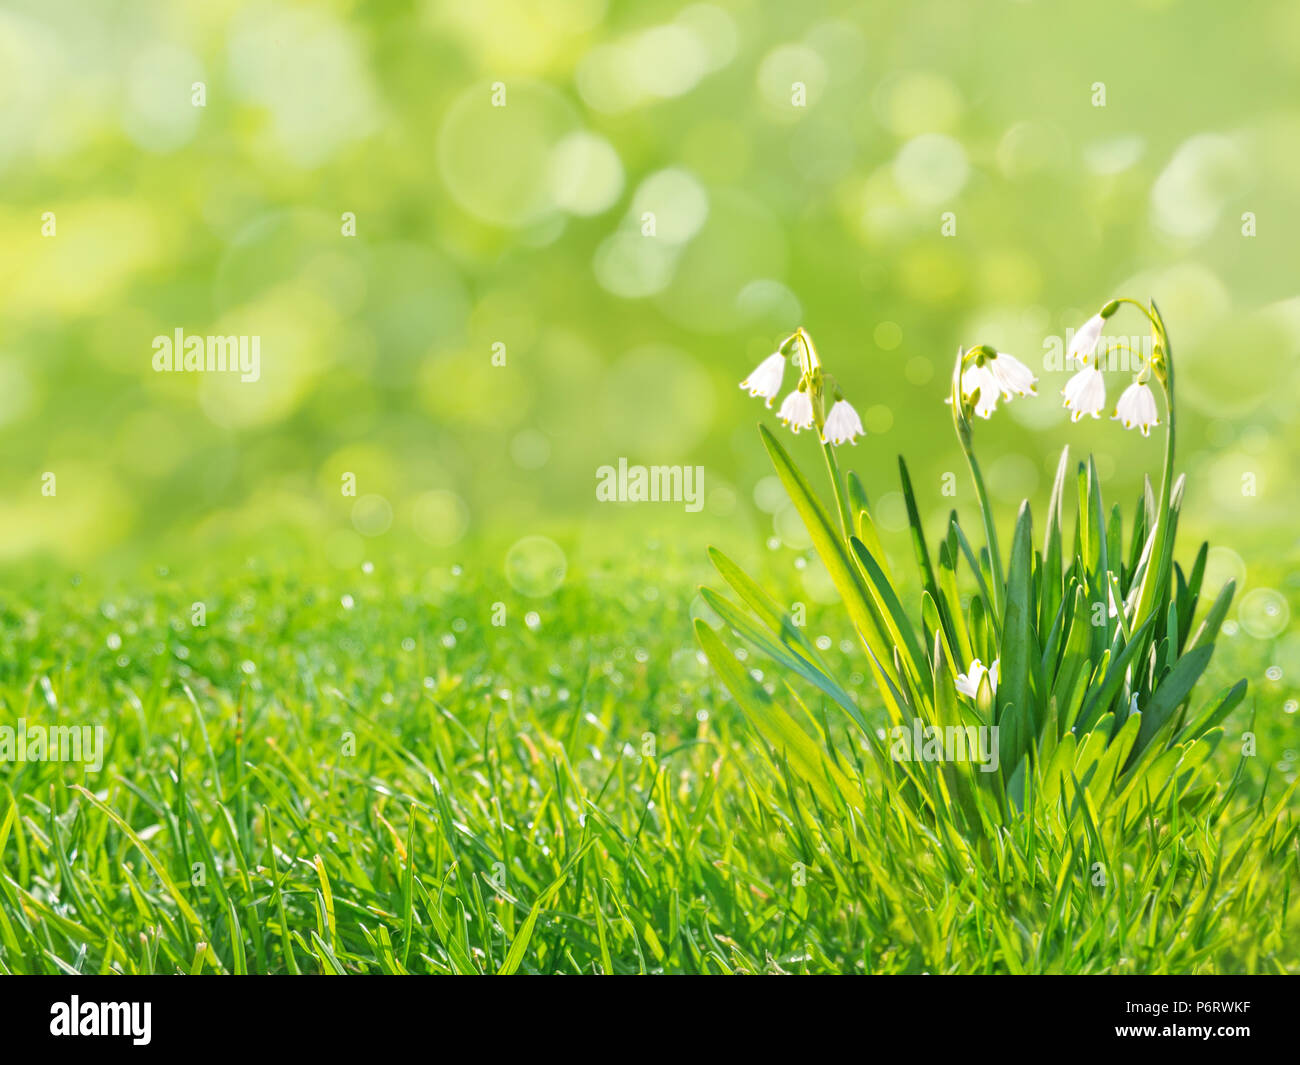 Snowdrops white flowers on the spring blurred grass lawn background snowdrops white flowers on the spring blurred grass lawn background mightylinksfo